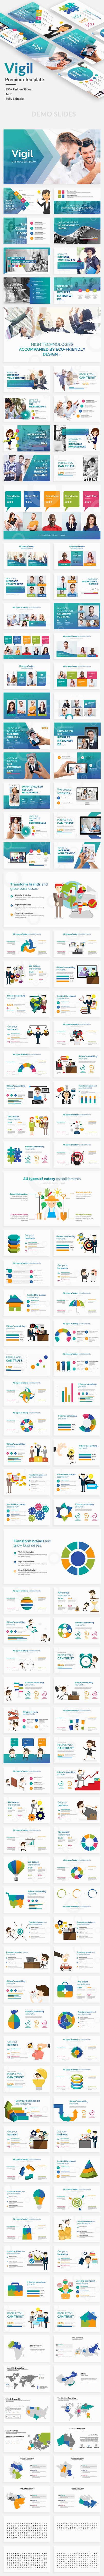 Vigil business premium powerpoint template by bypaintdesign vigil business premium powerpoint template business powerpoint templates flashek Image collections